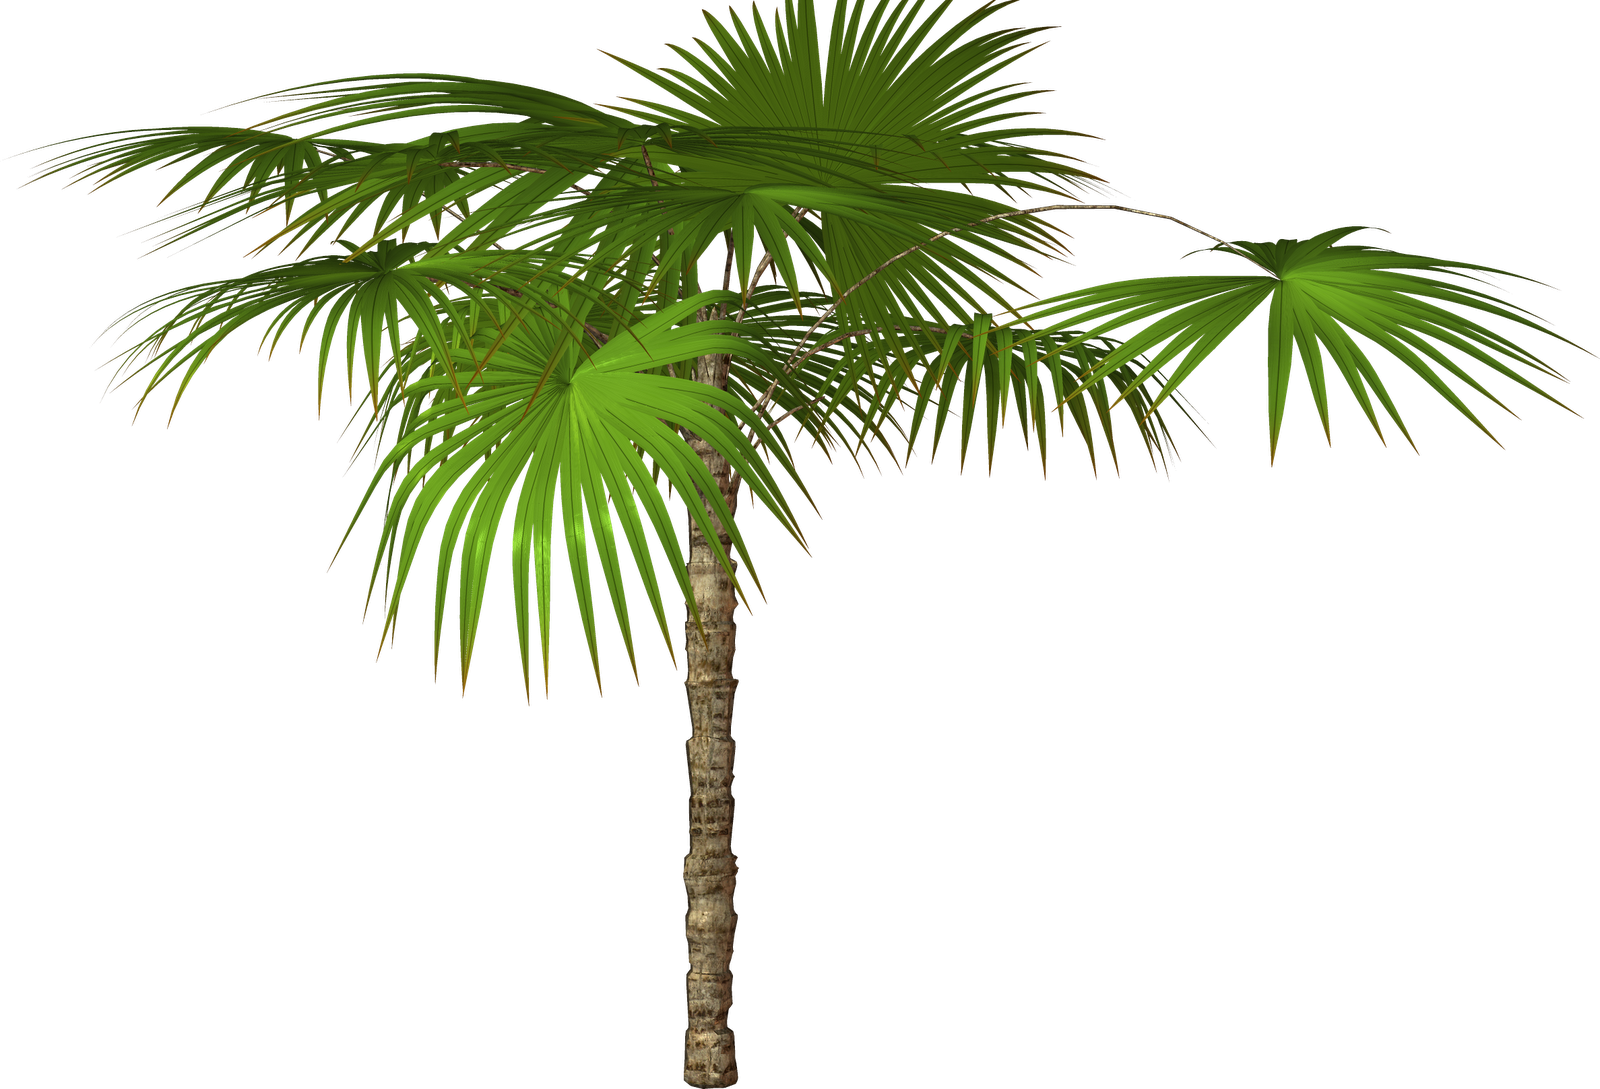 Palm tree clipart free picture royalty free library Palm Tree Transparent PNG Pictures - Free Icons and PNG Backgrounds picture royalty free library